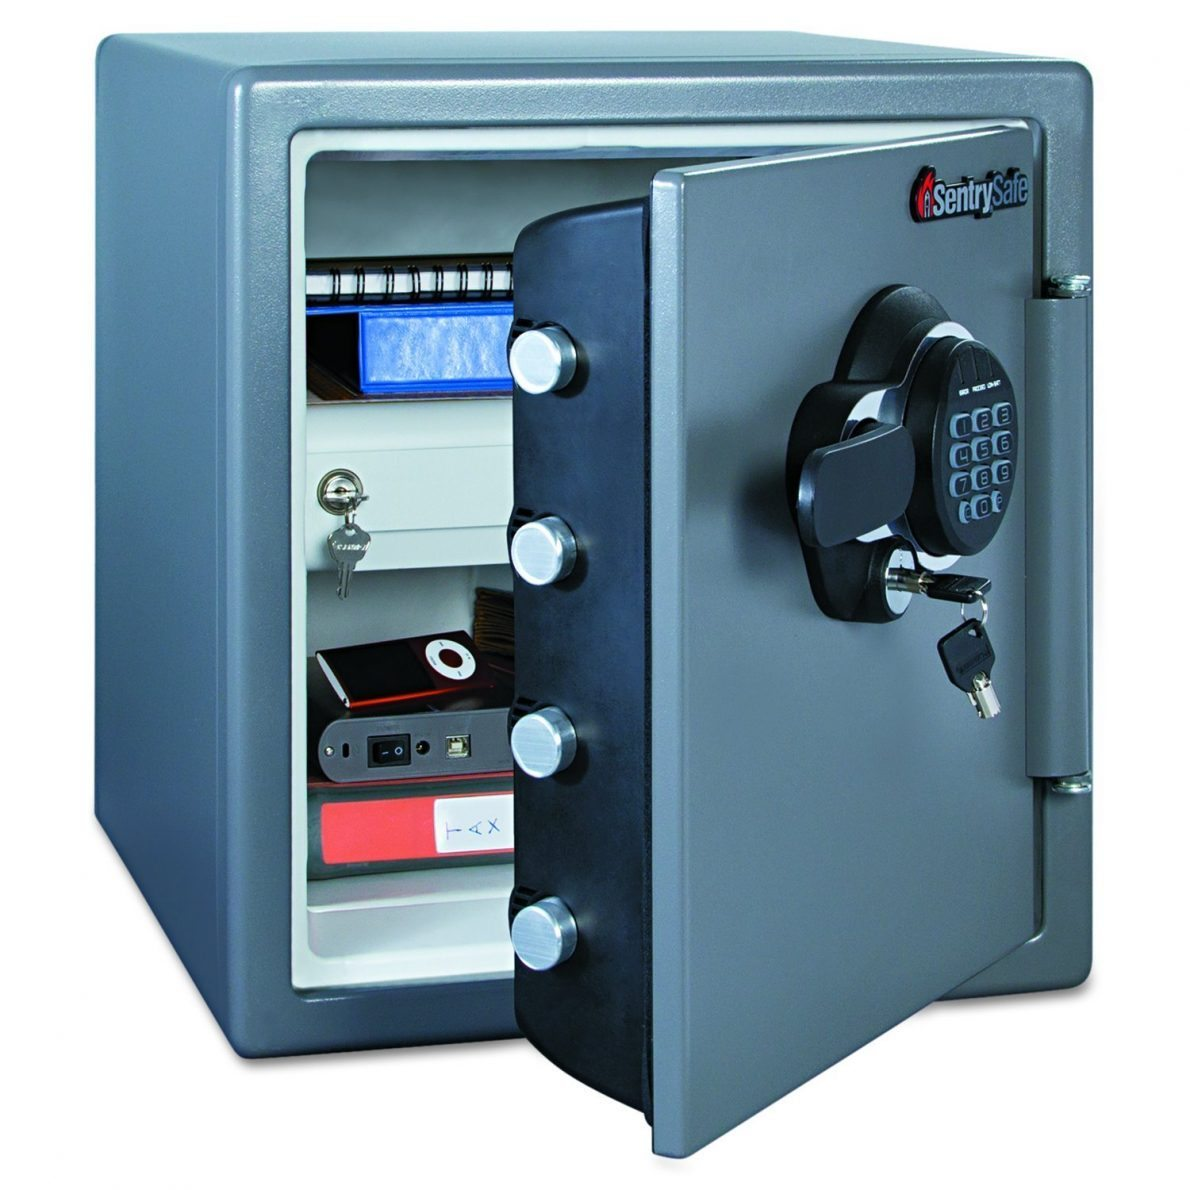 Sentry Safe SFW123GDC Electronic Fire Safe Review